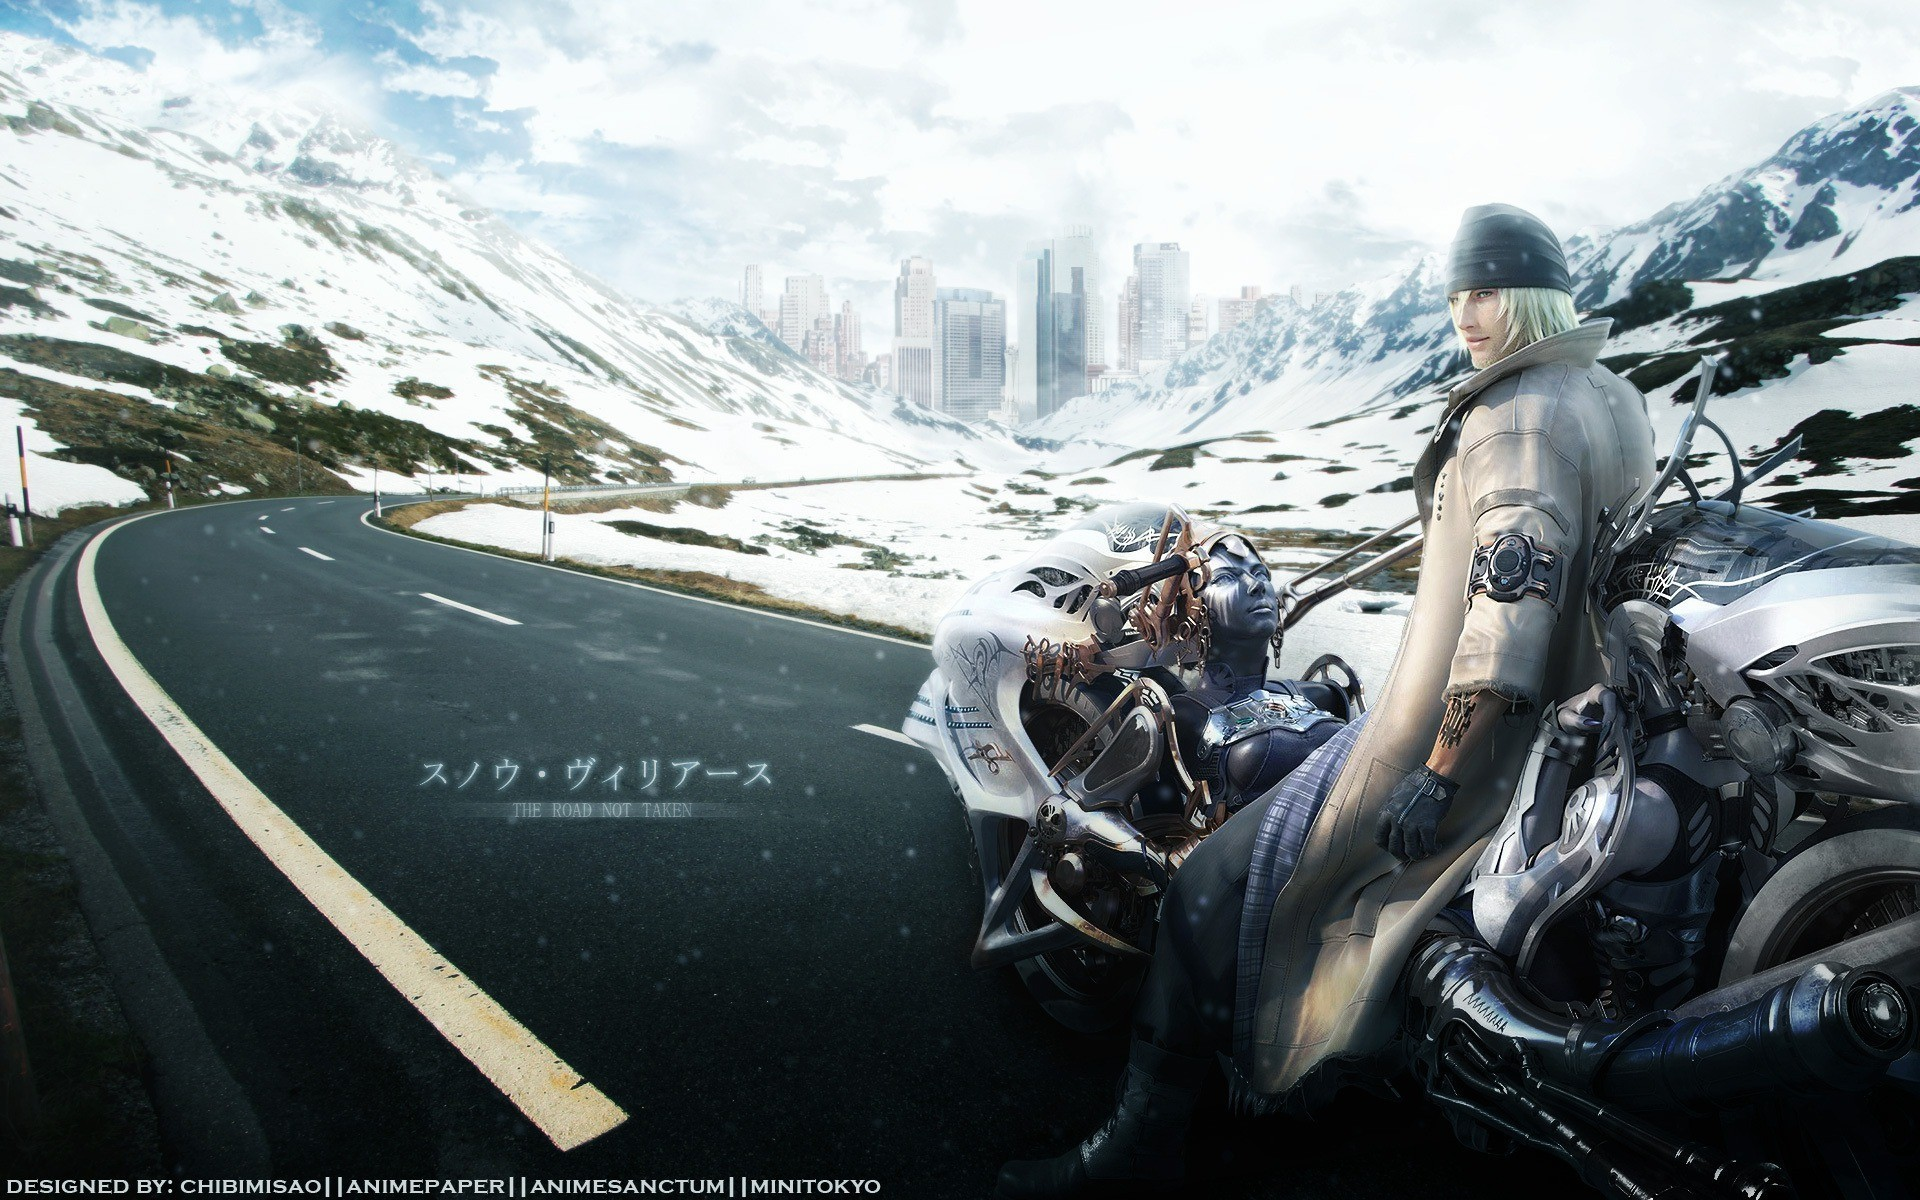 1920x1200 Motorcyclist in a role-playing game Final Fantasy VI